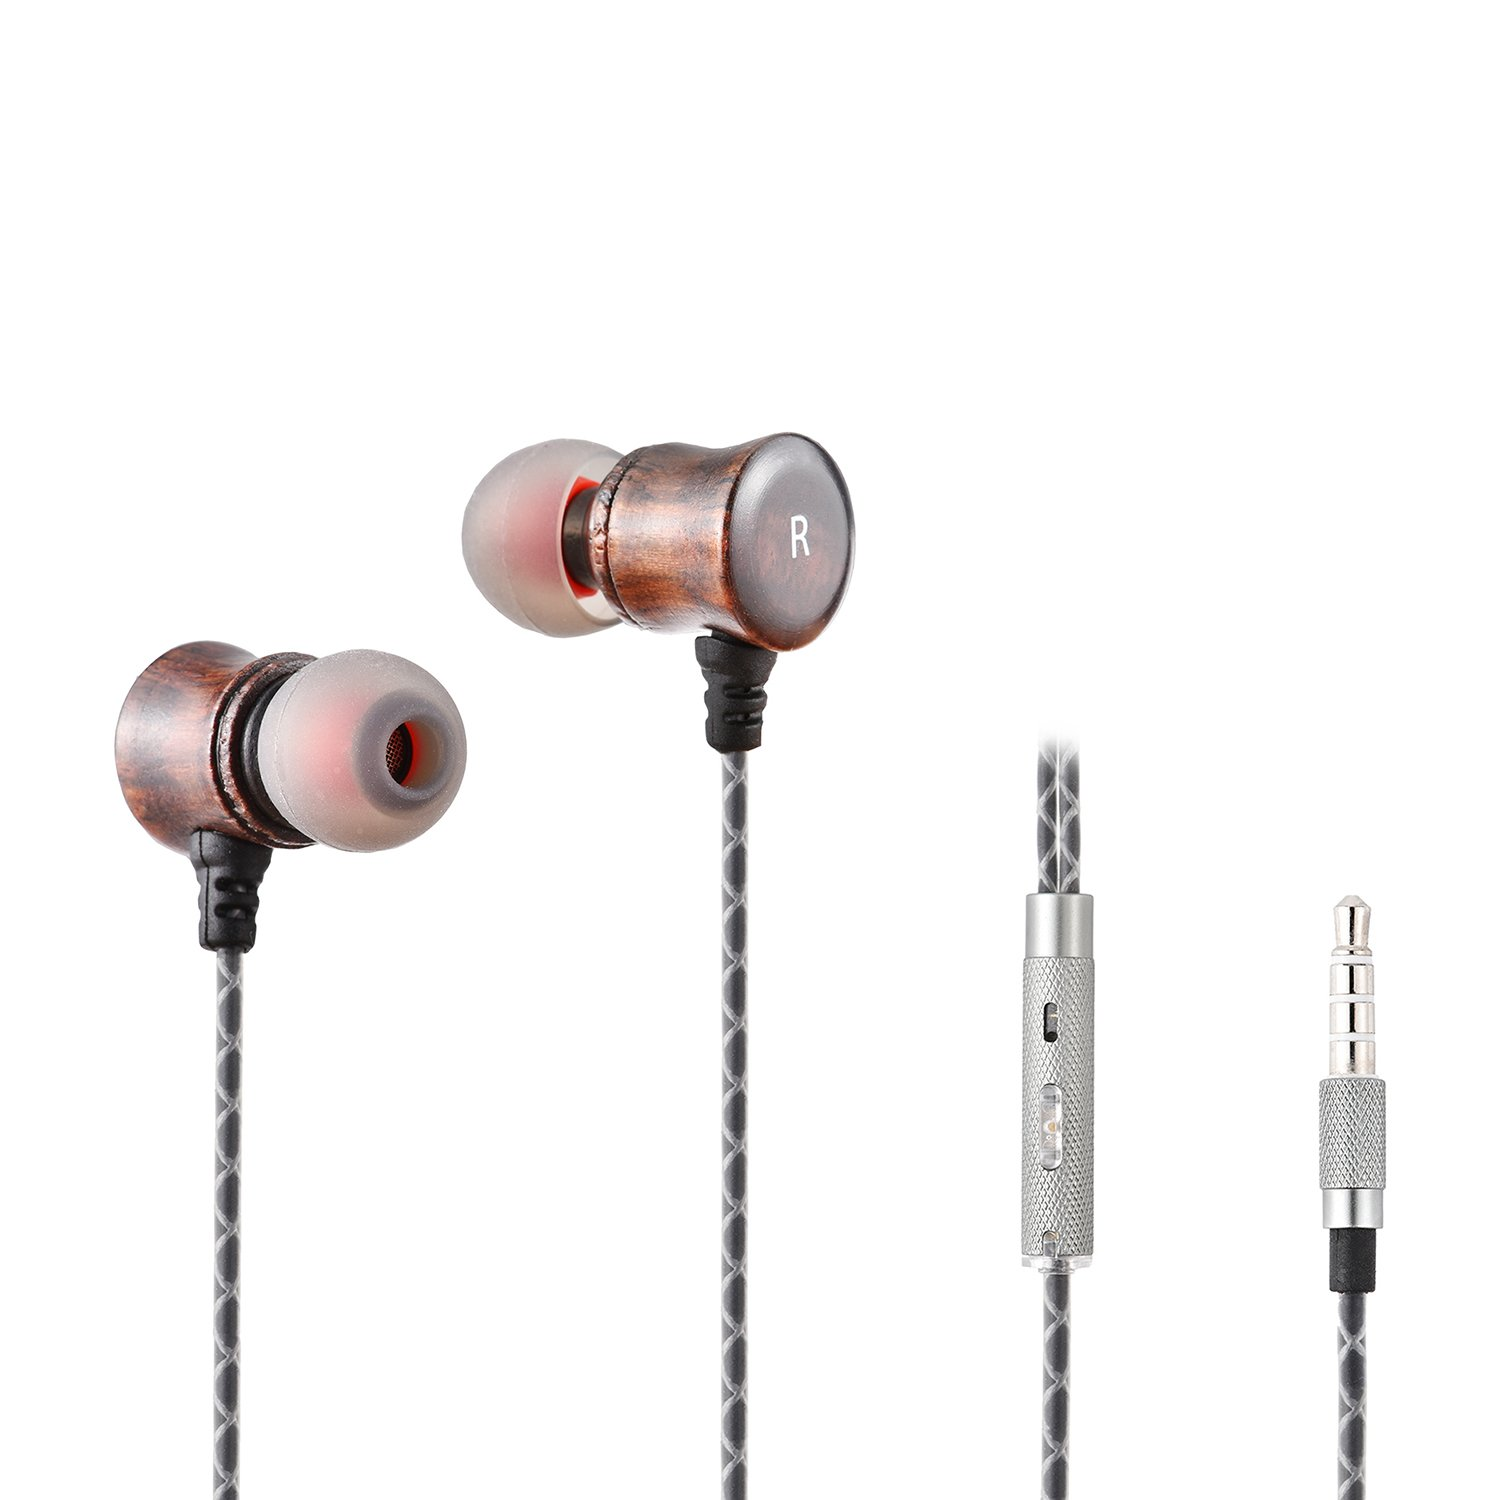 VirKech Premium Wood Headphones Noise-isolating In-ear HiFi Stereo Music Earbuds Headsets with HD Microphone